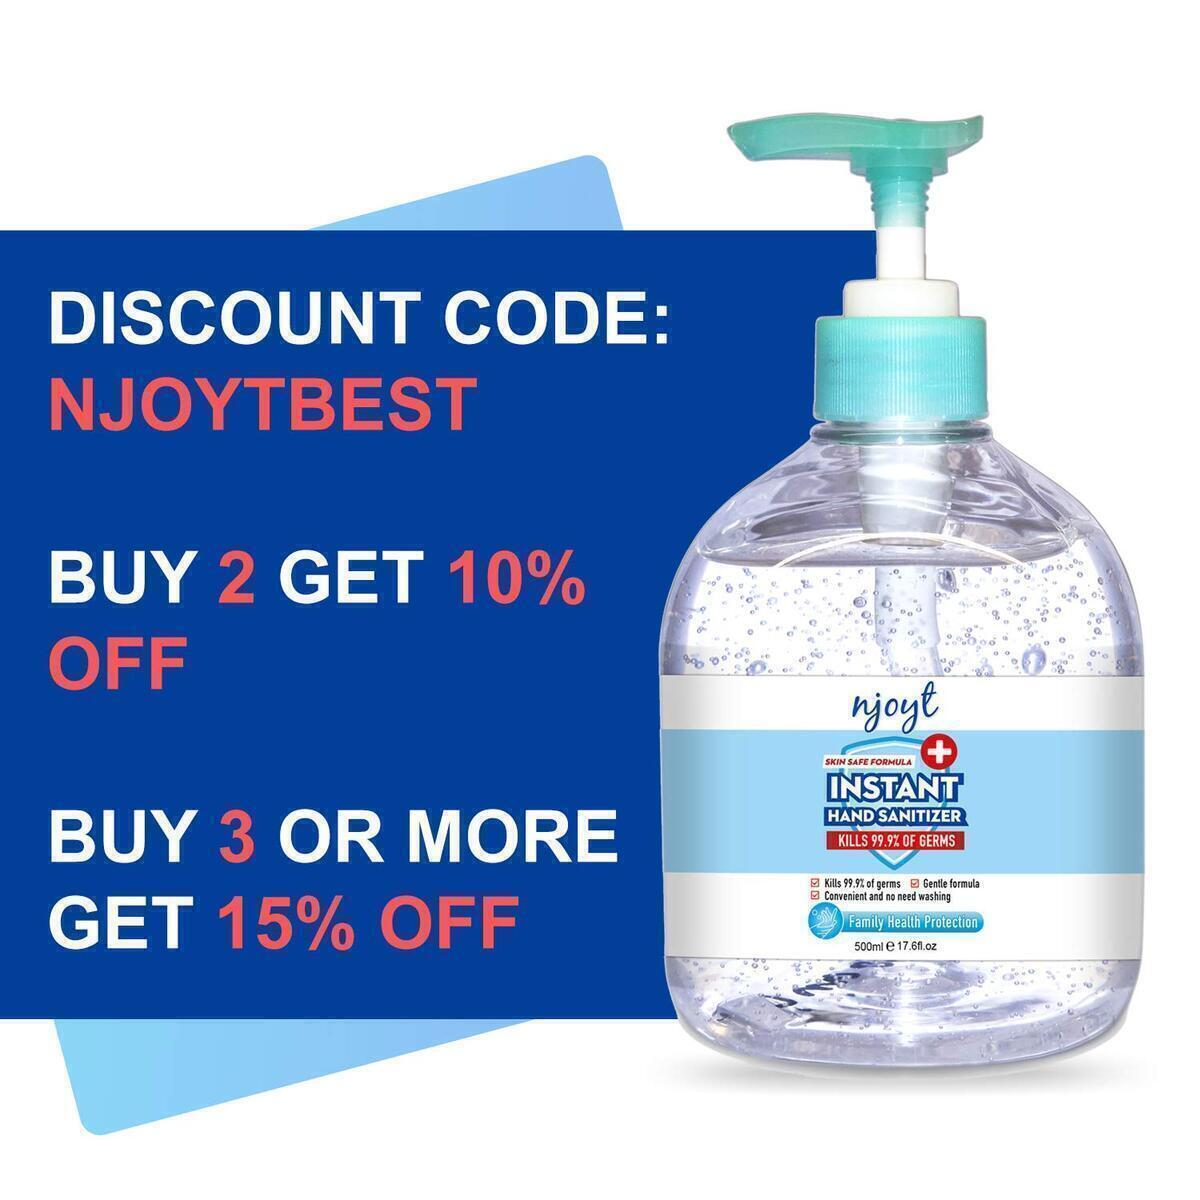 Njoyt Hand Sanitizer Pump Gel - 75% Alcohol Based Sanitizing Liquid, Non-Drying, Gentle & Safe - For Hands, Skin, Commercial Use - Office, Home, Travel Disinfecting & Cleaning Products - 4-Pack, 500ml